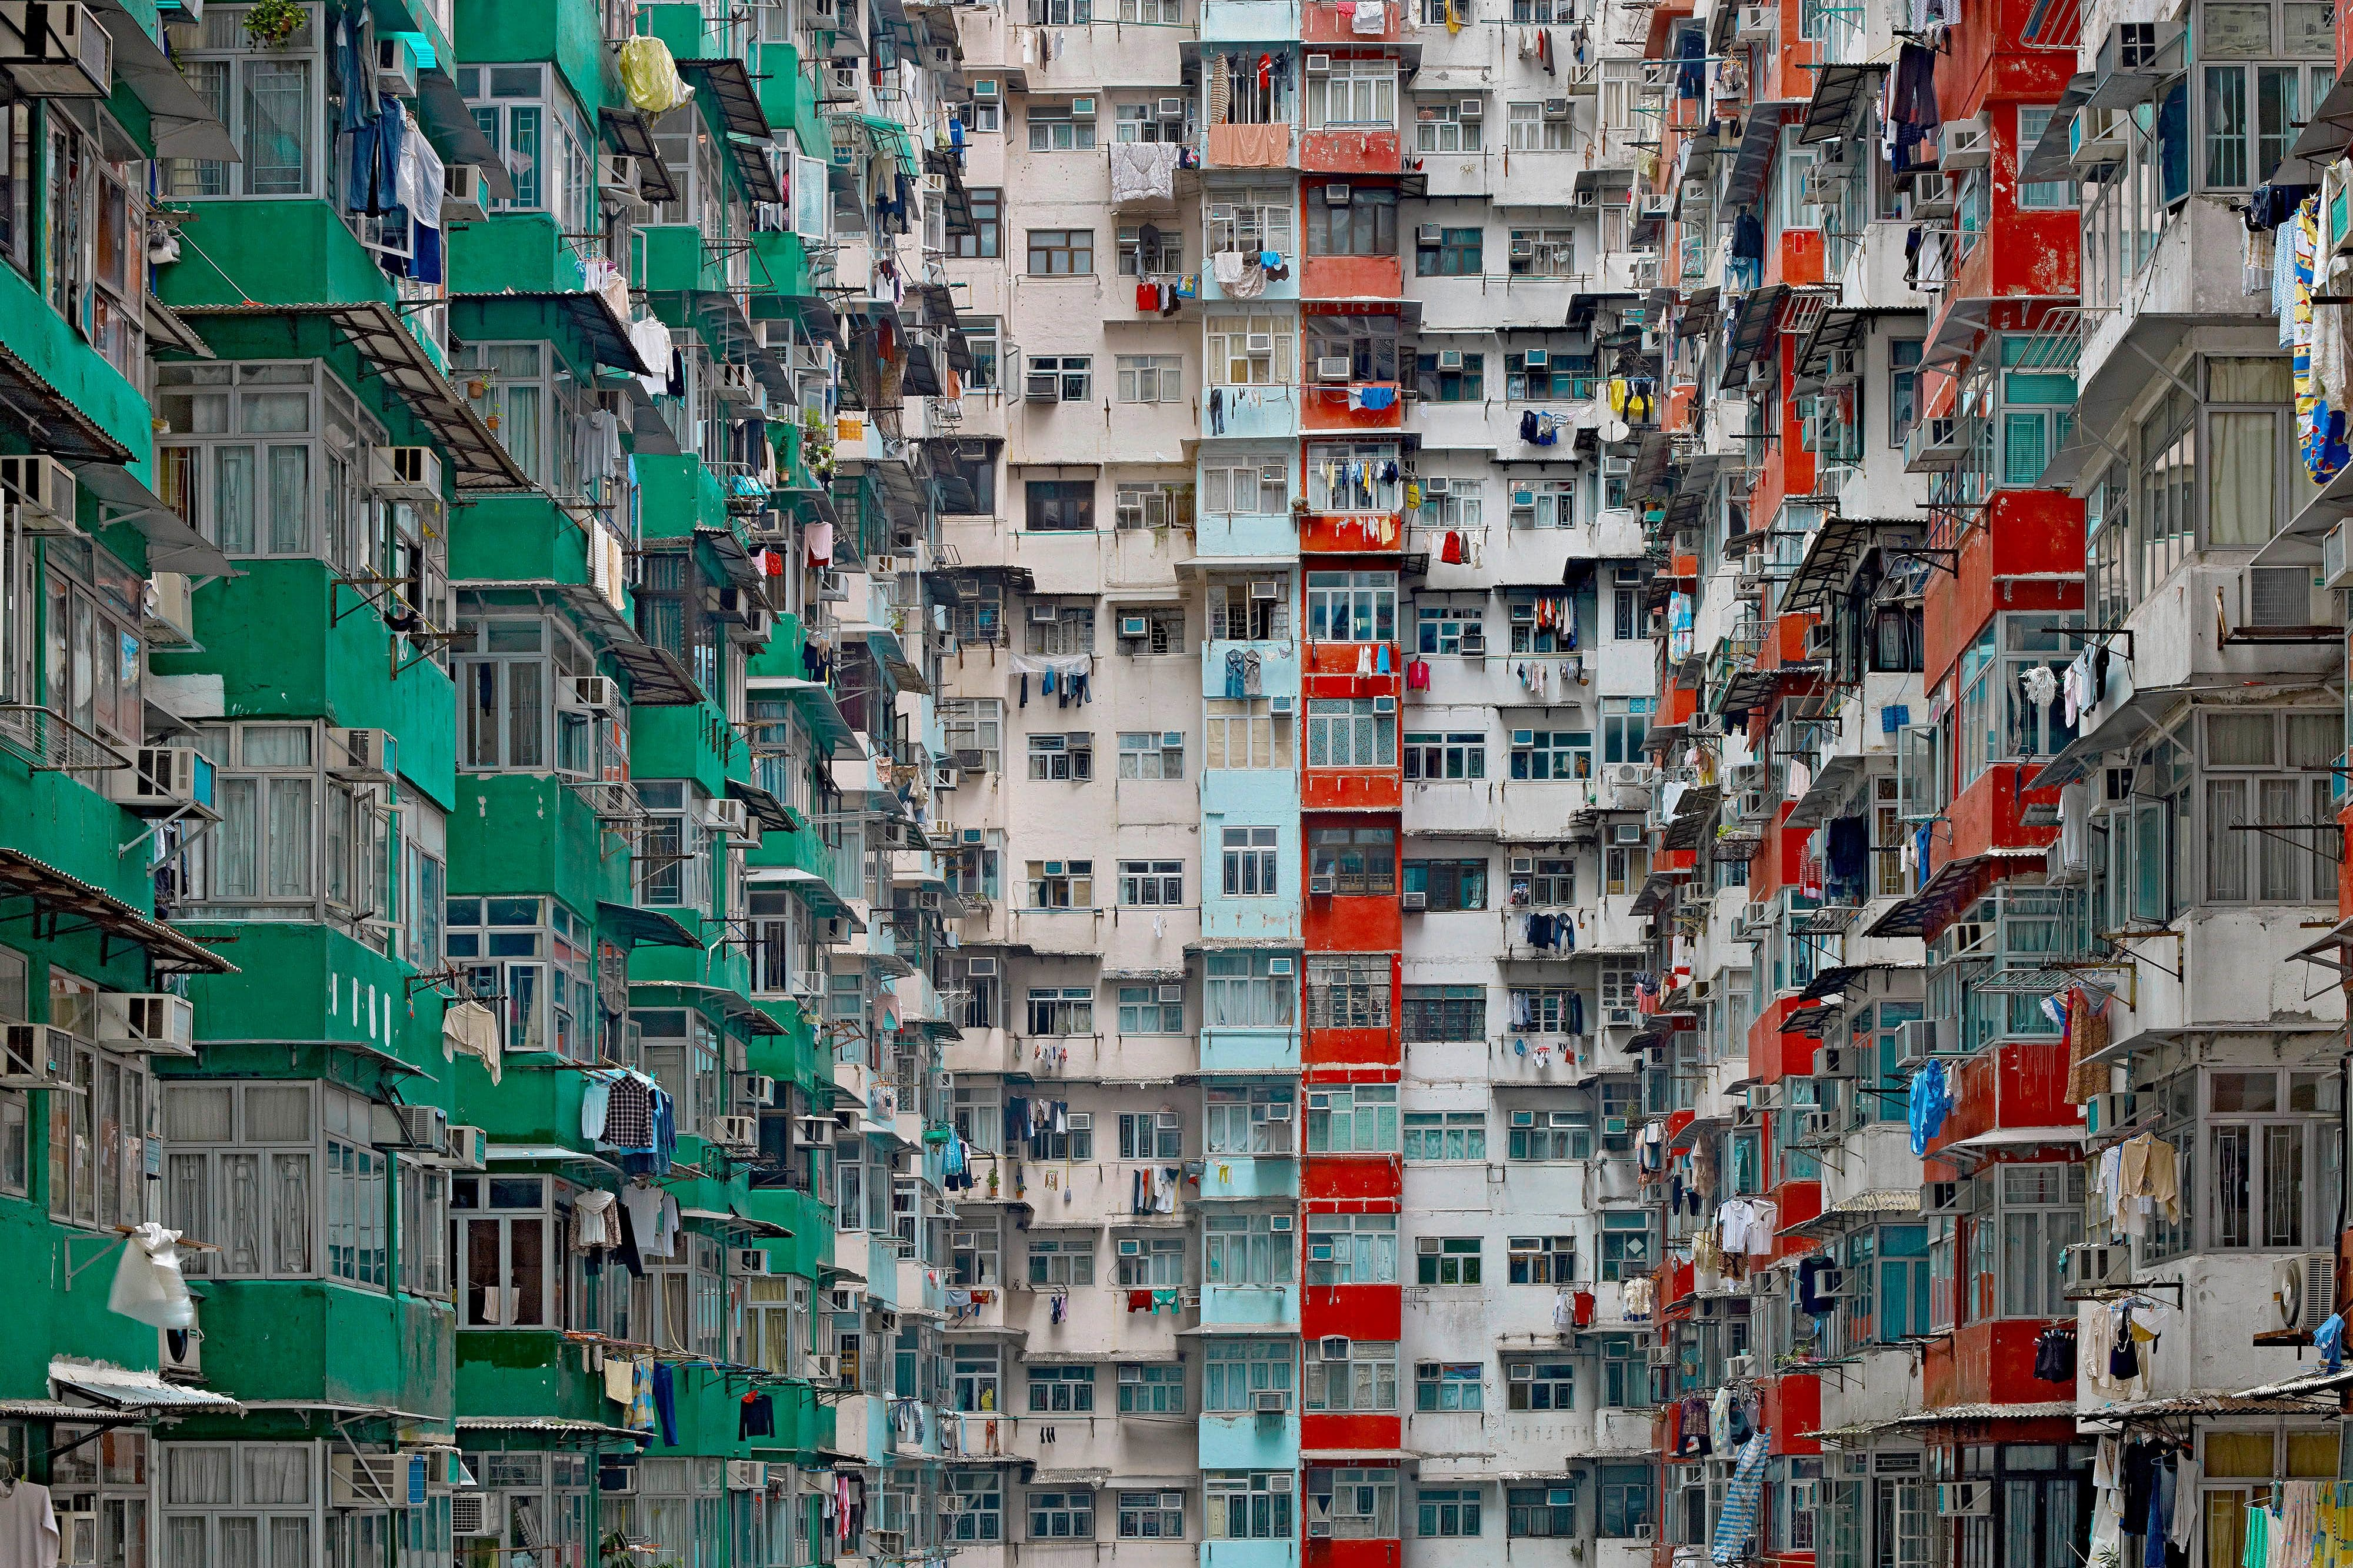 The multicoloured high-rise flats of Hong Kong with green, red and blue balconies